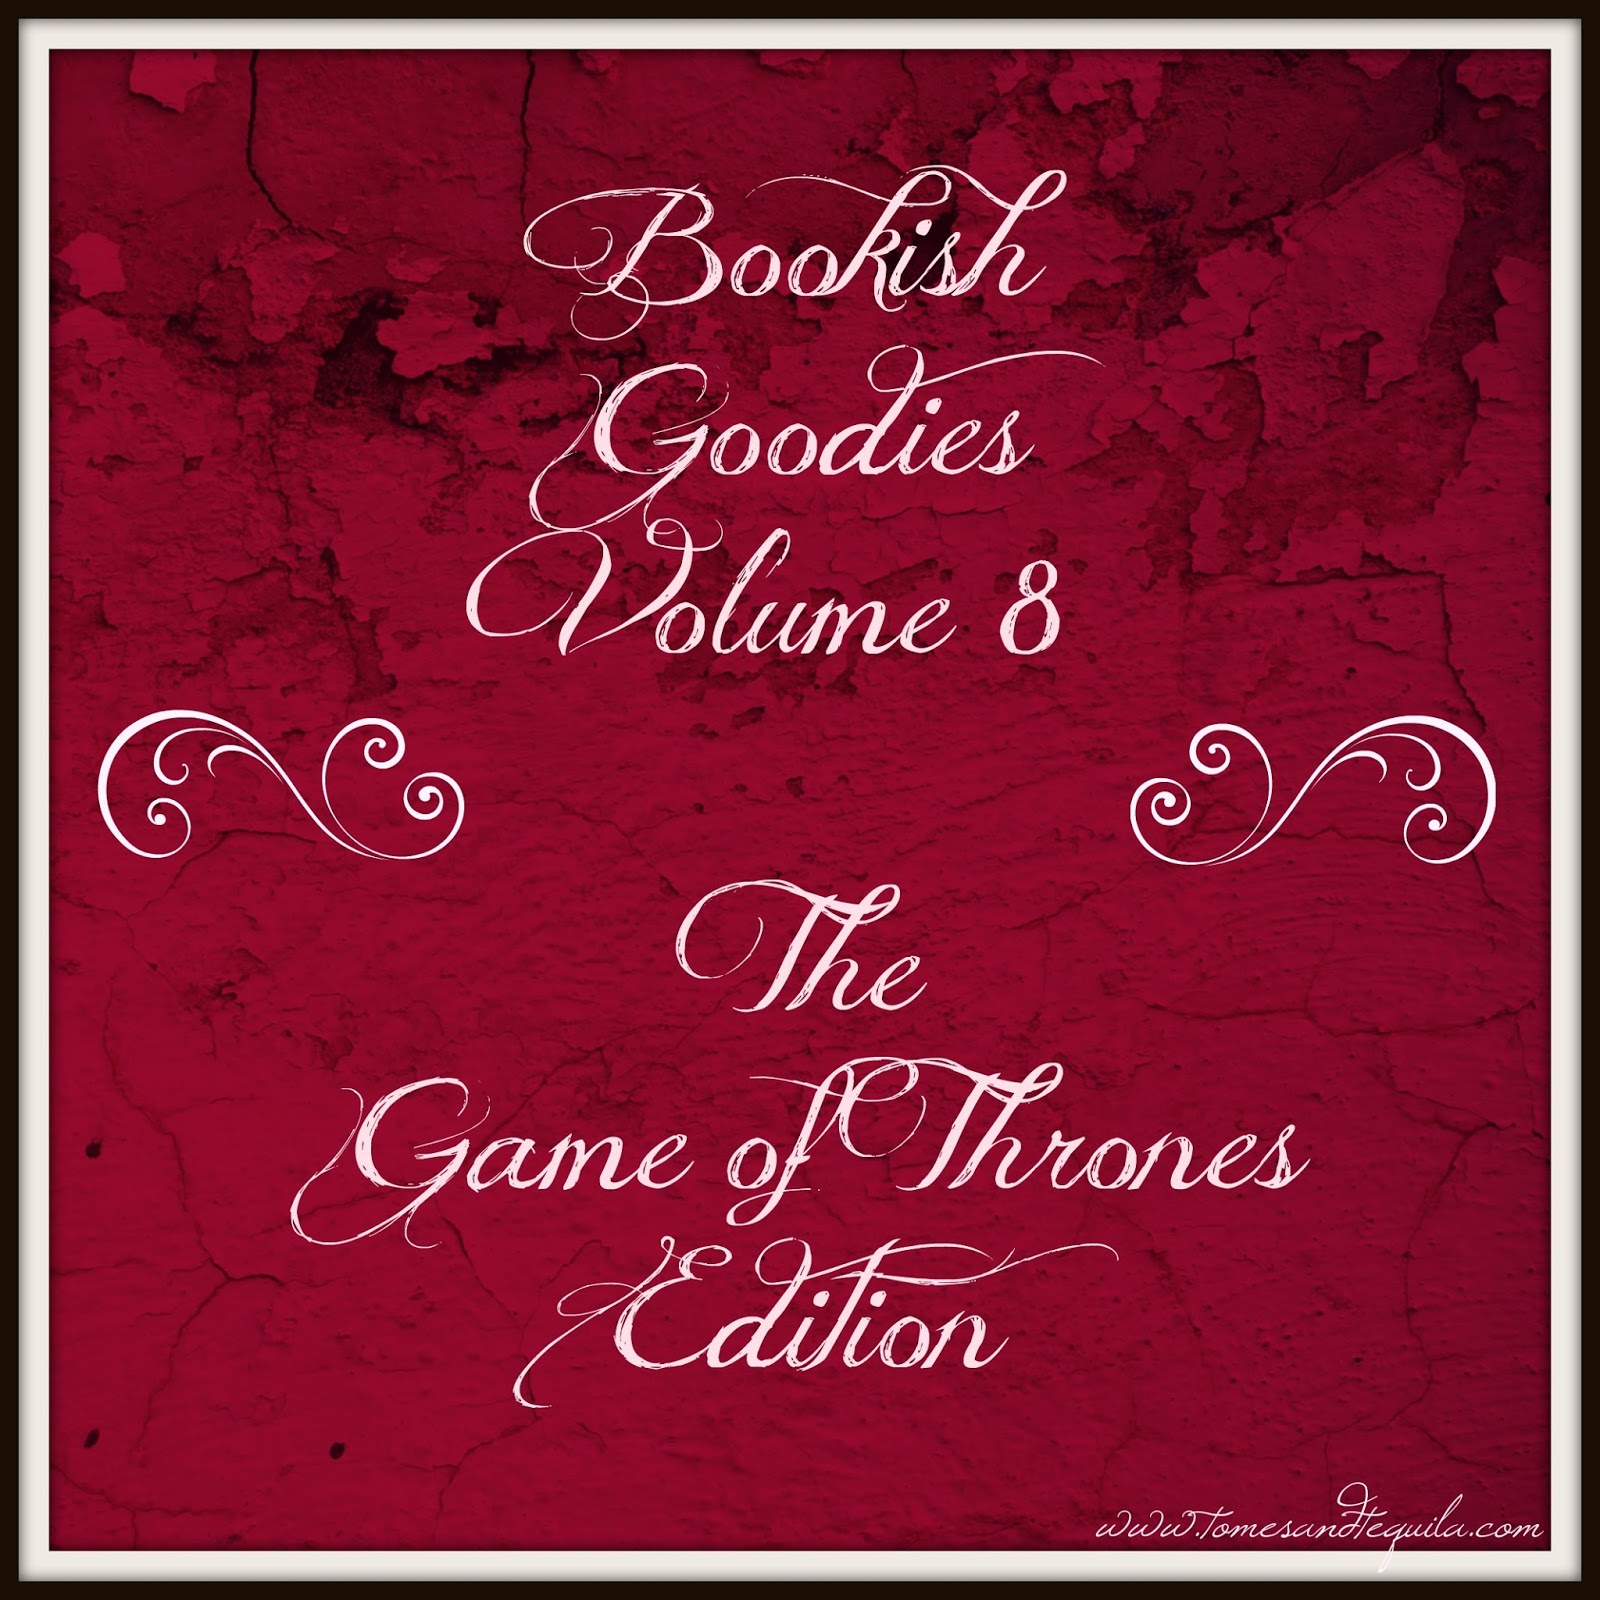 Bookish Goo s Vol 8 The Game of Thrones Edition